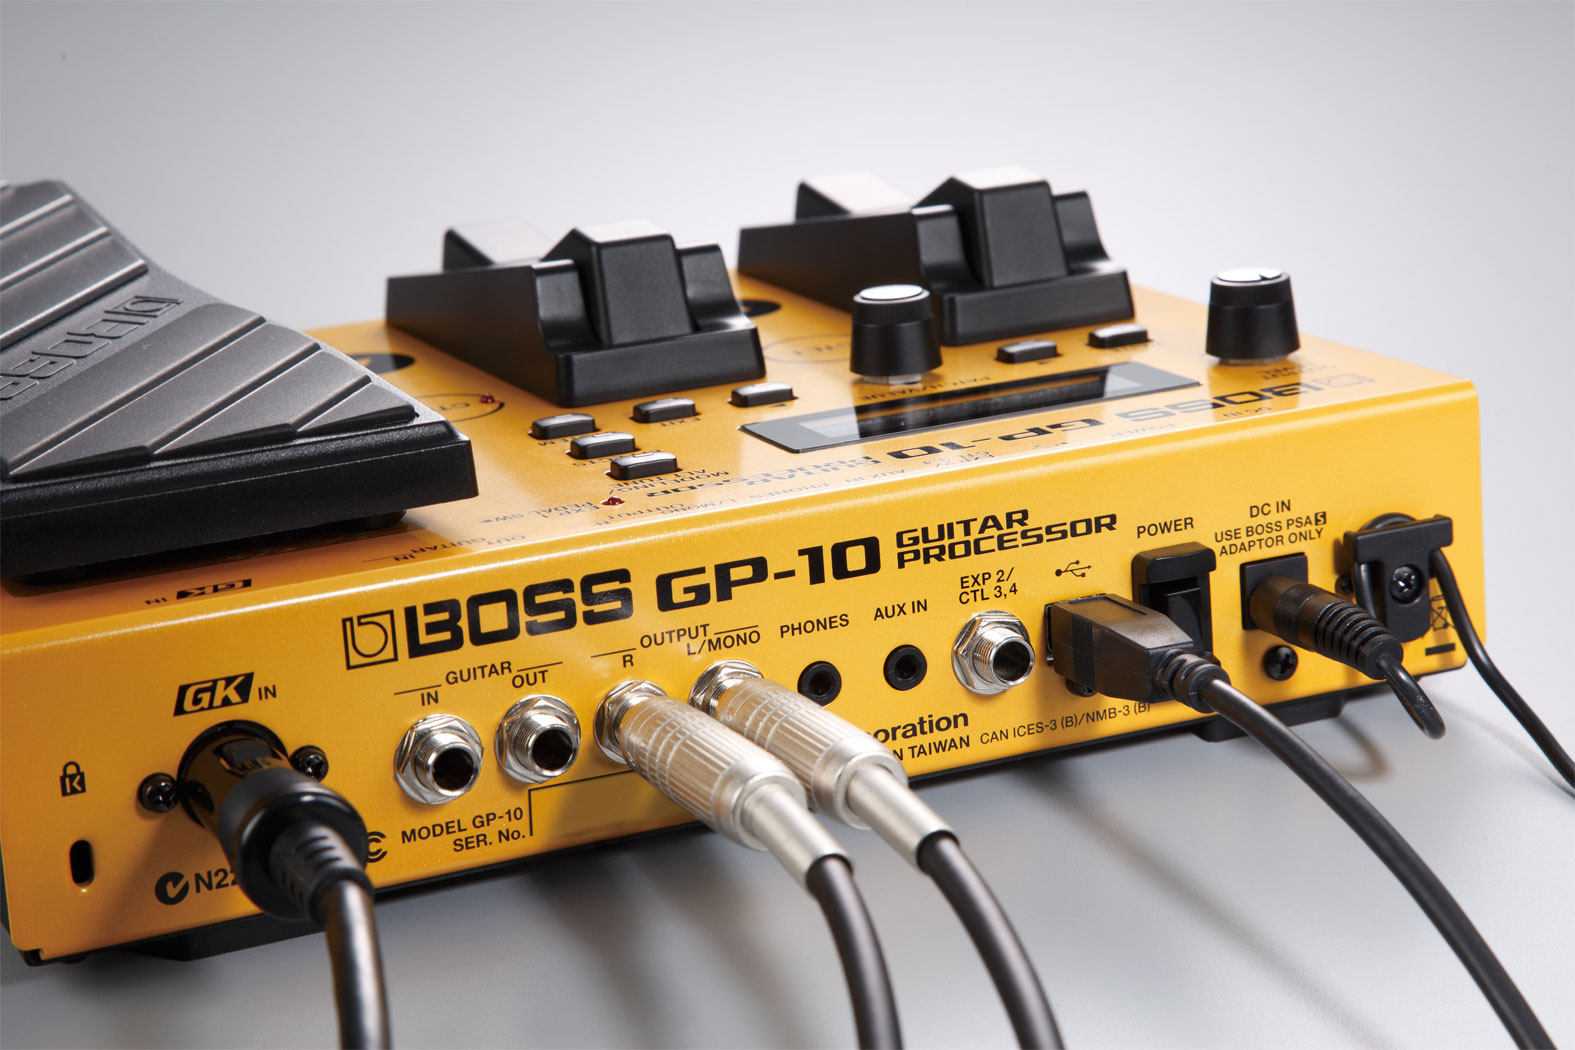 roland  boss gp-10 guitar processor